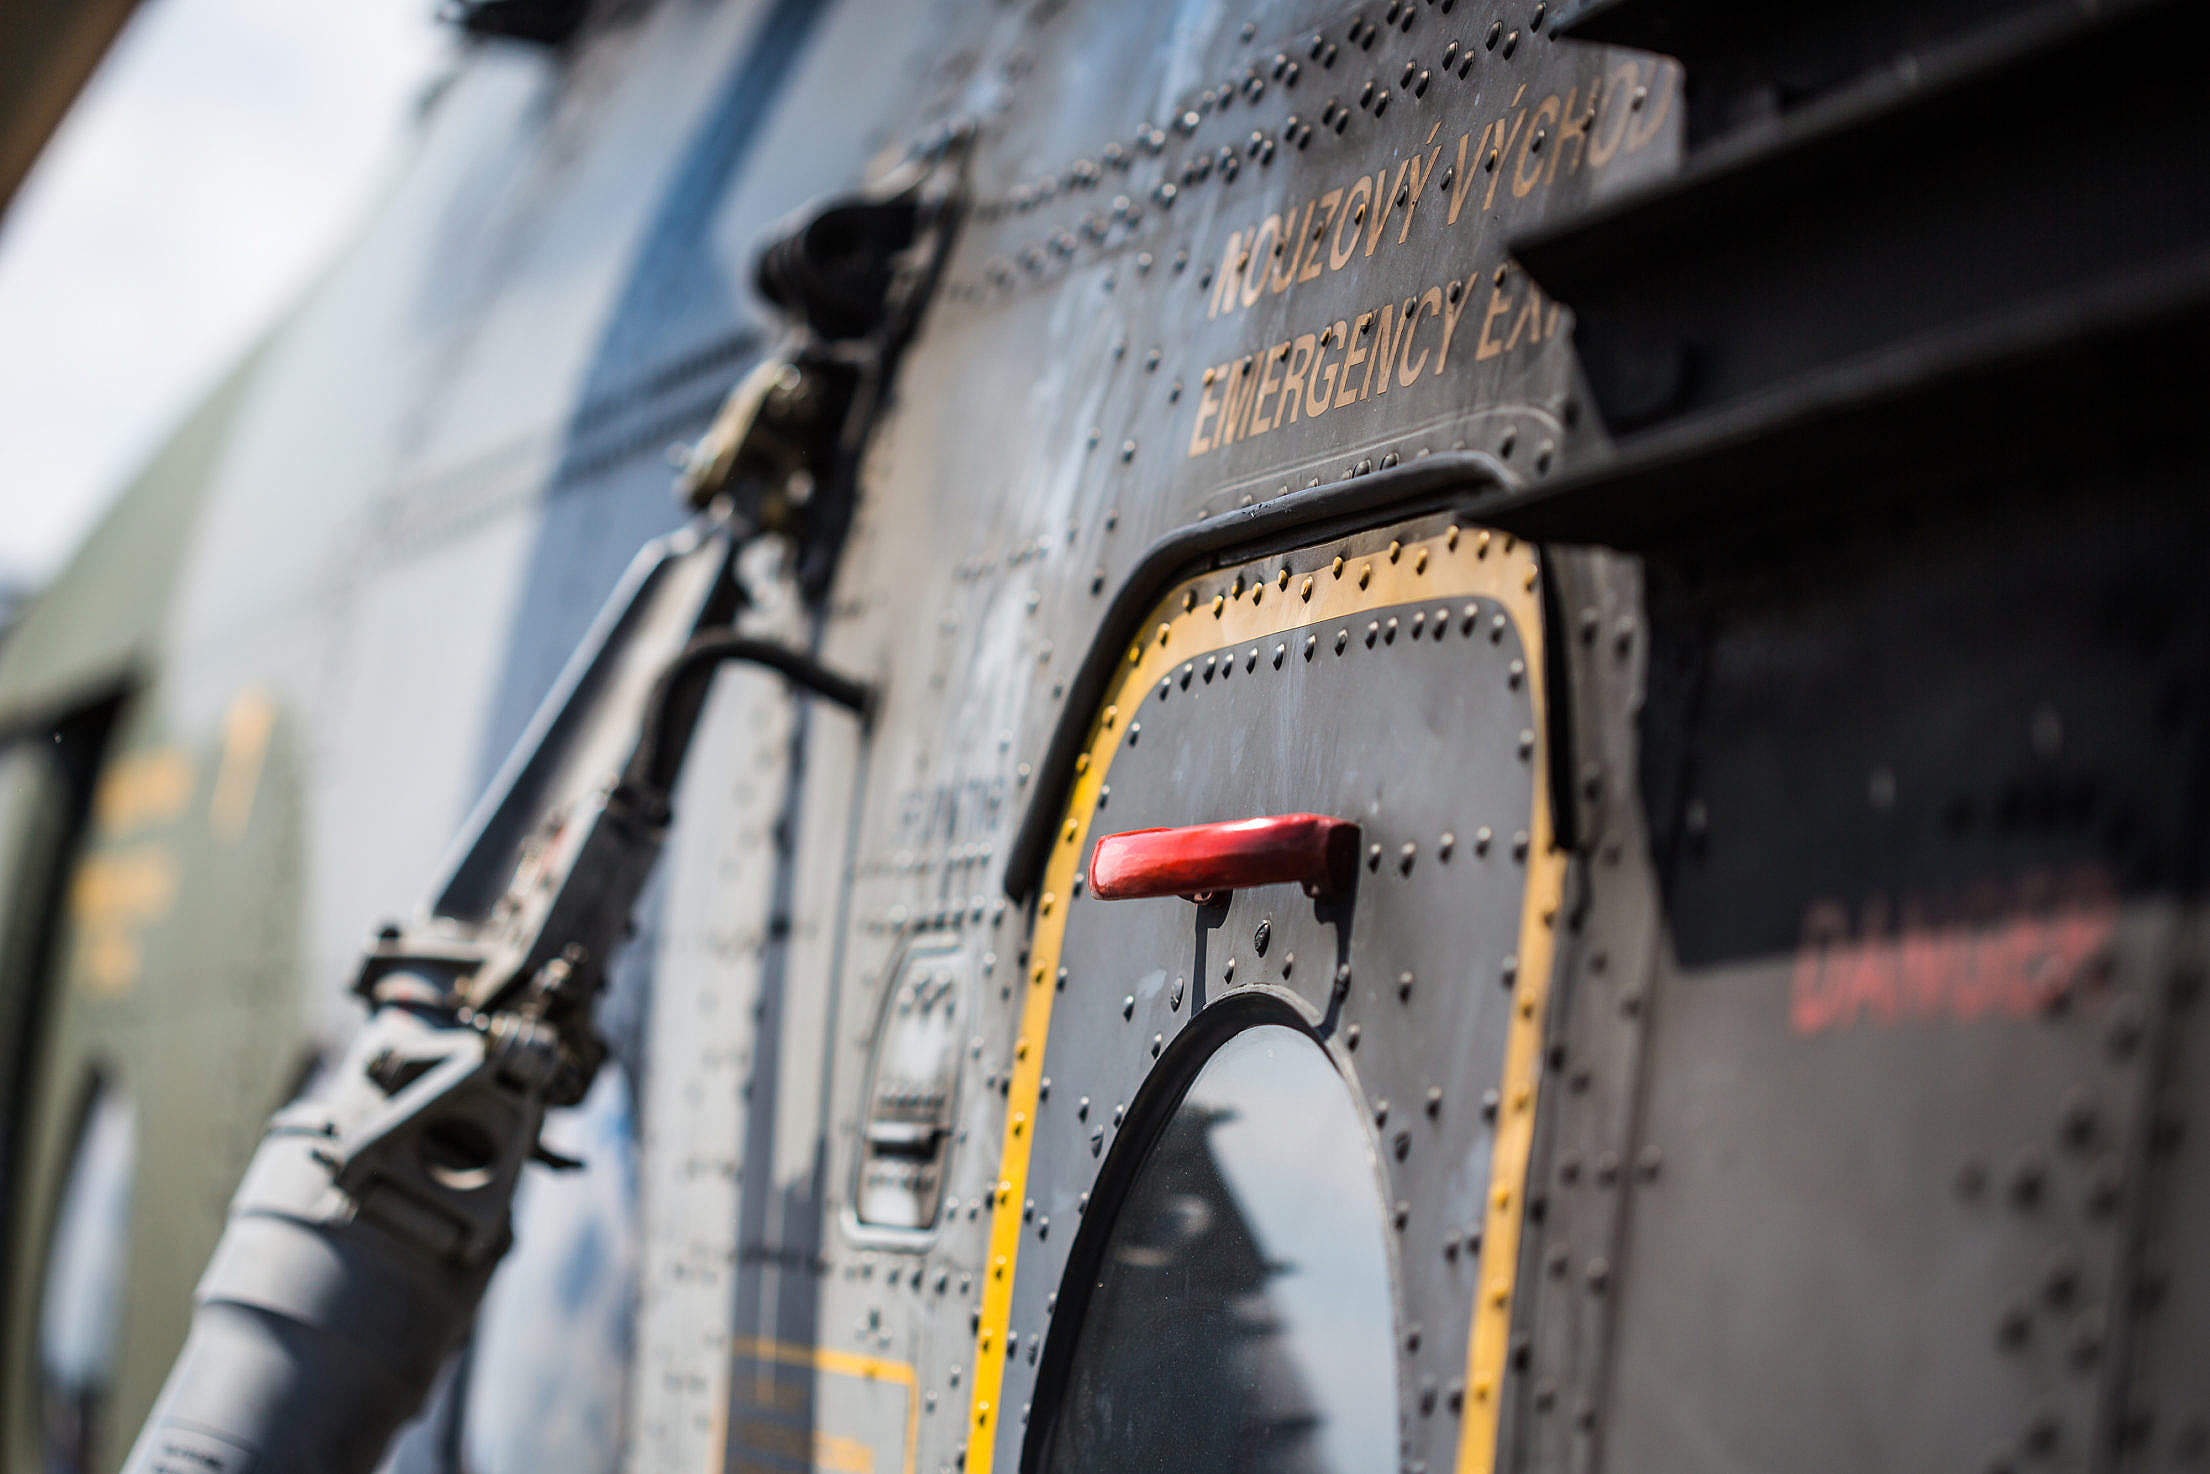 Emergency Exit Door on Army Helicopter Free Stock Photo